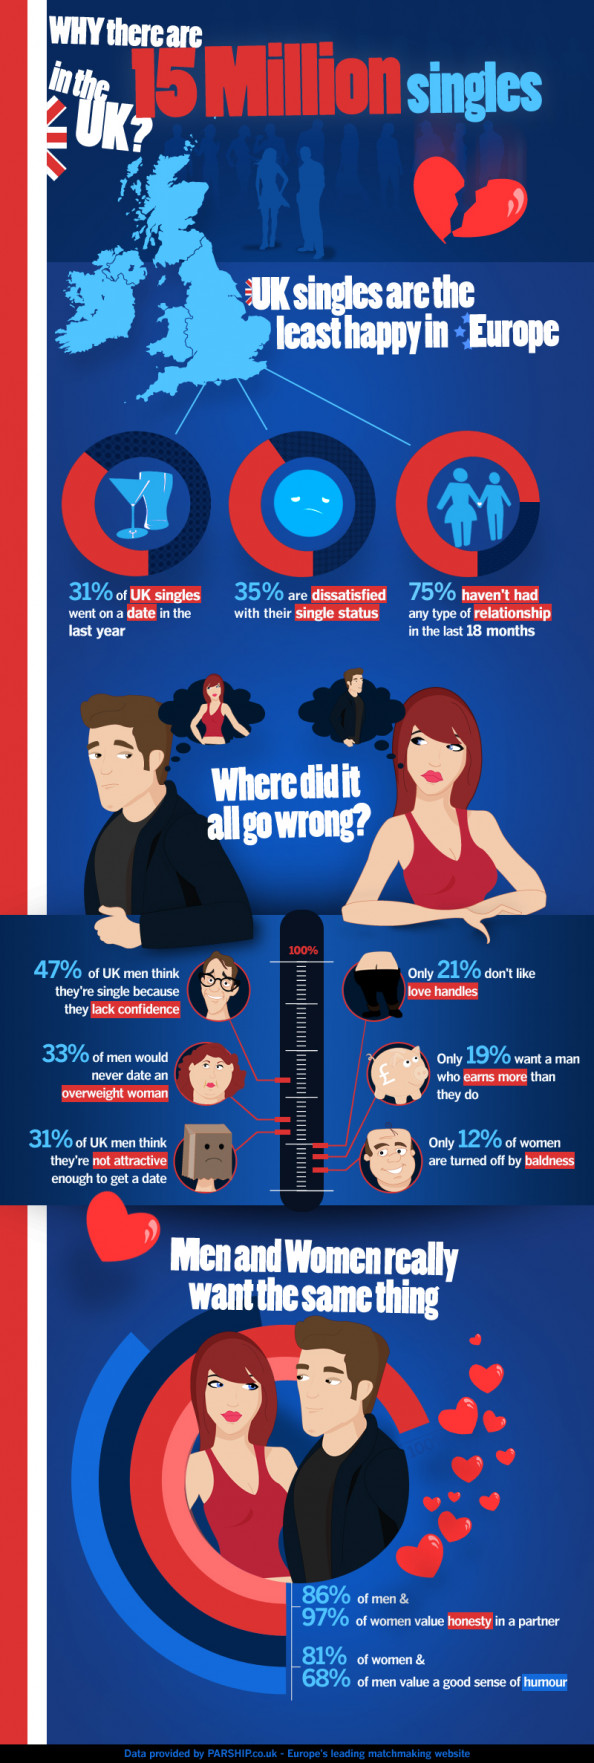 Why Are there 15 Million Singles in the UK? Infographic